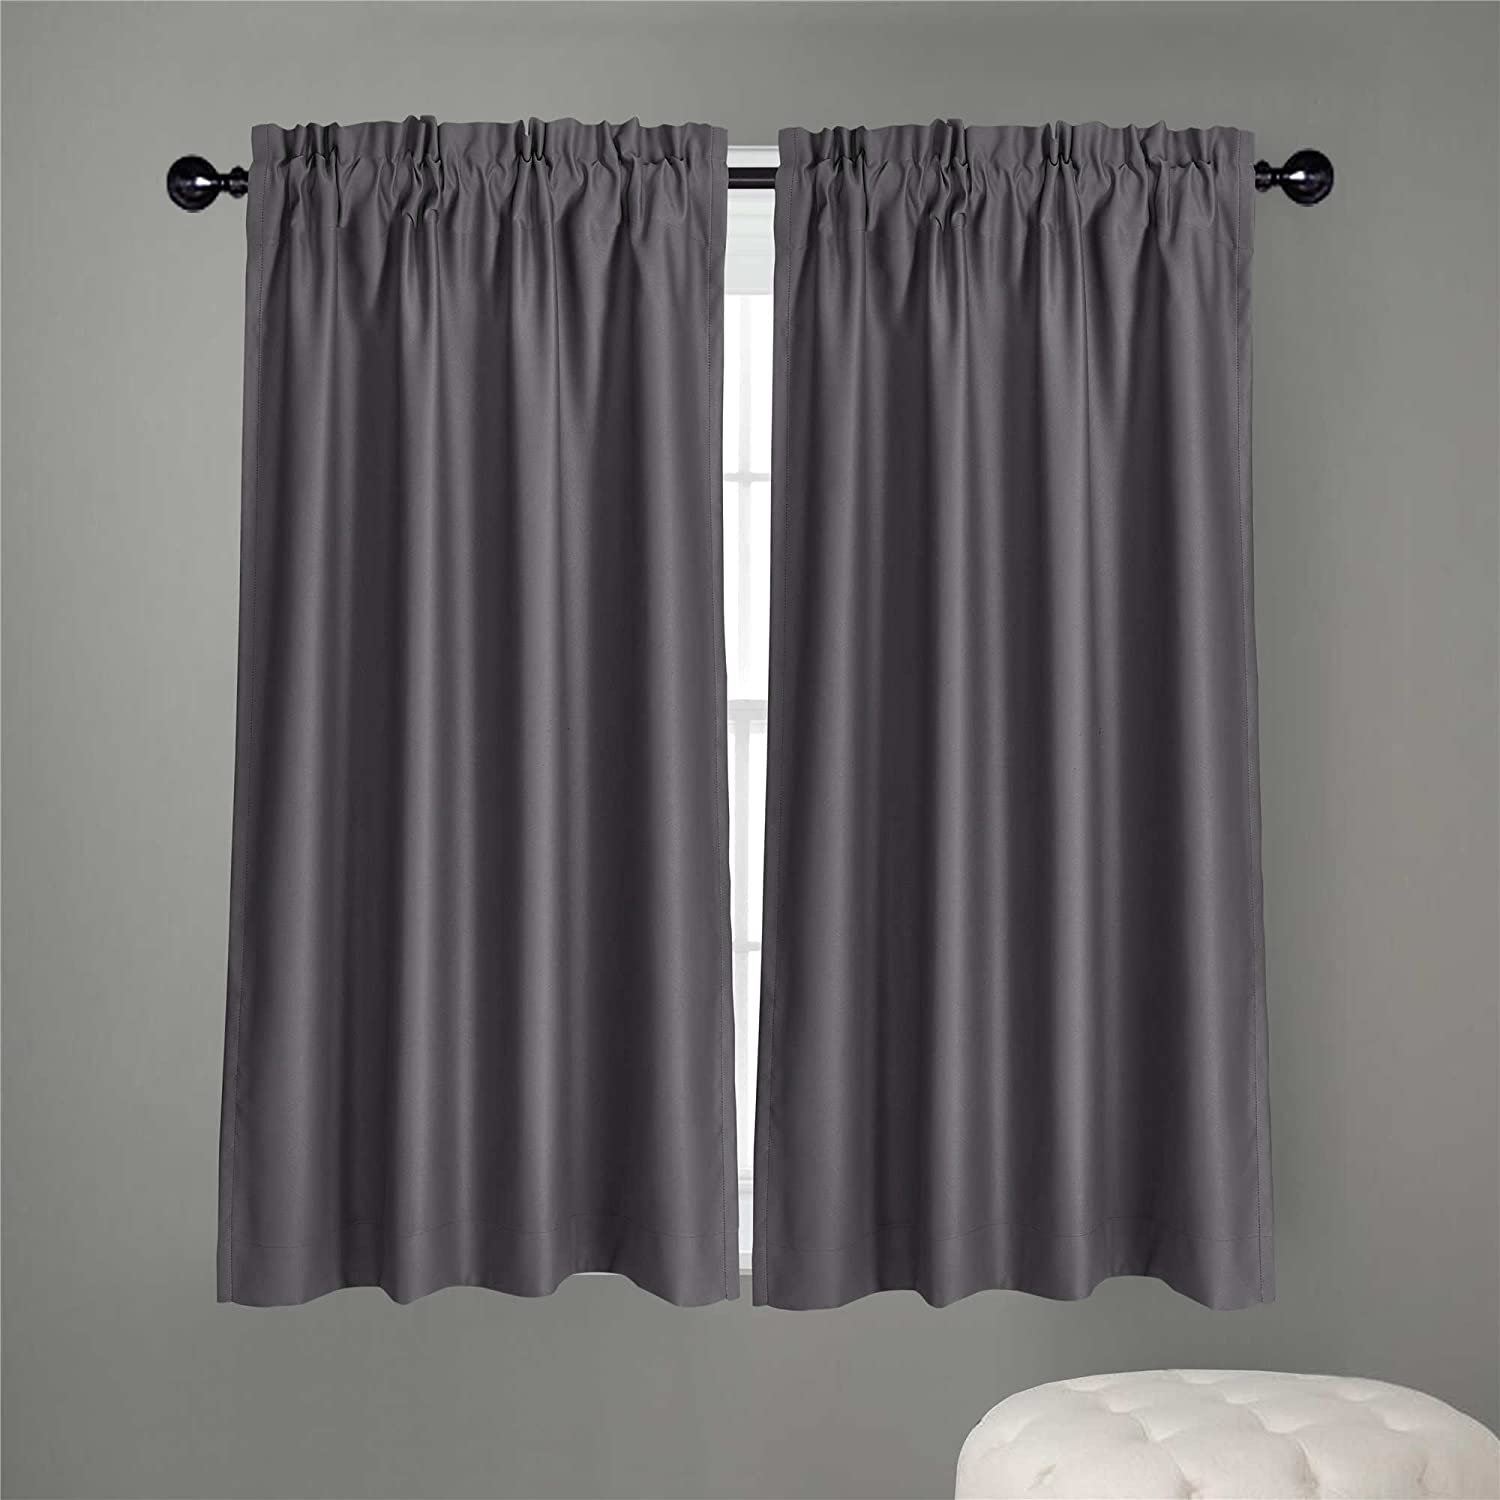 "Dreaming Casa Solid Room Darkening Blackout Kitchen Curtains Tiers Swags Valances Draperies for Café, Bath, Laundry, Bedroom 2 Panels Grey Rod Pocket, 2(42"" W x 36"" L)"